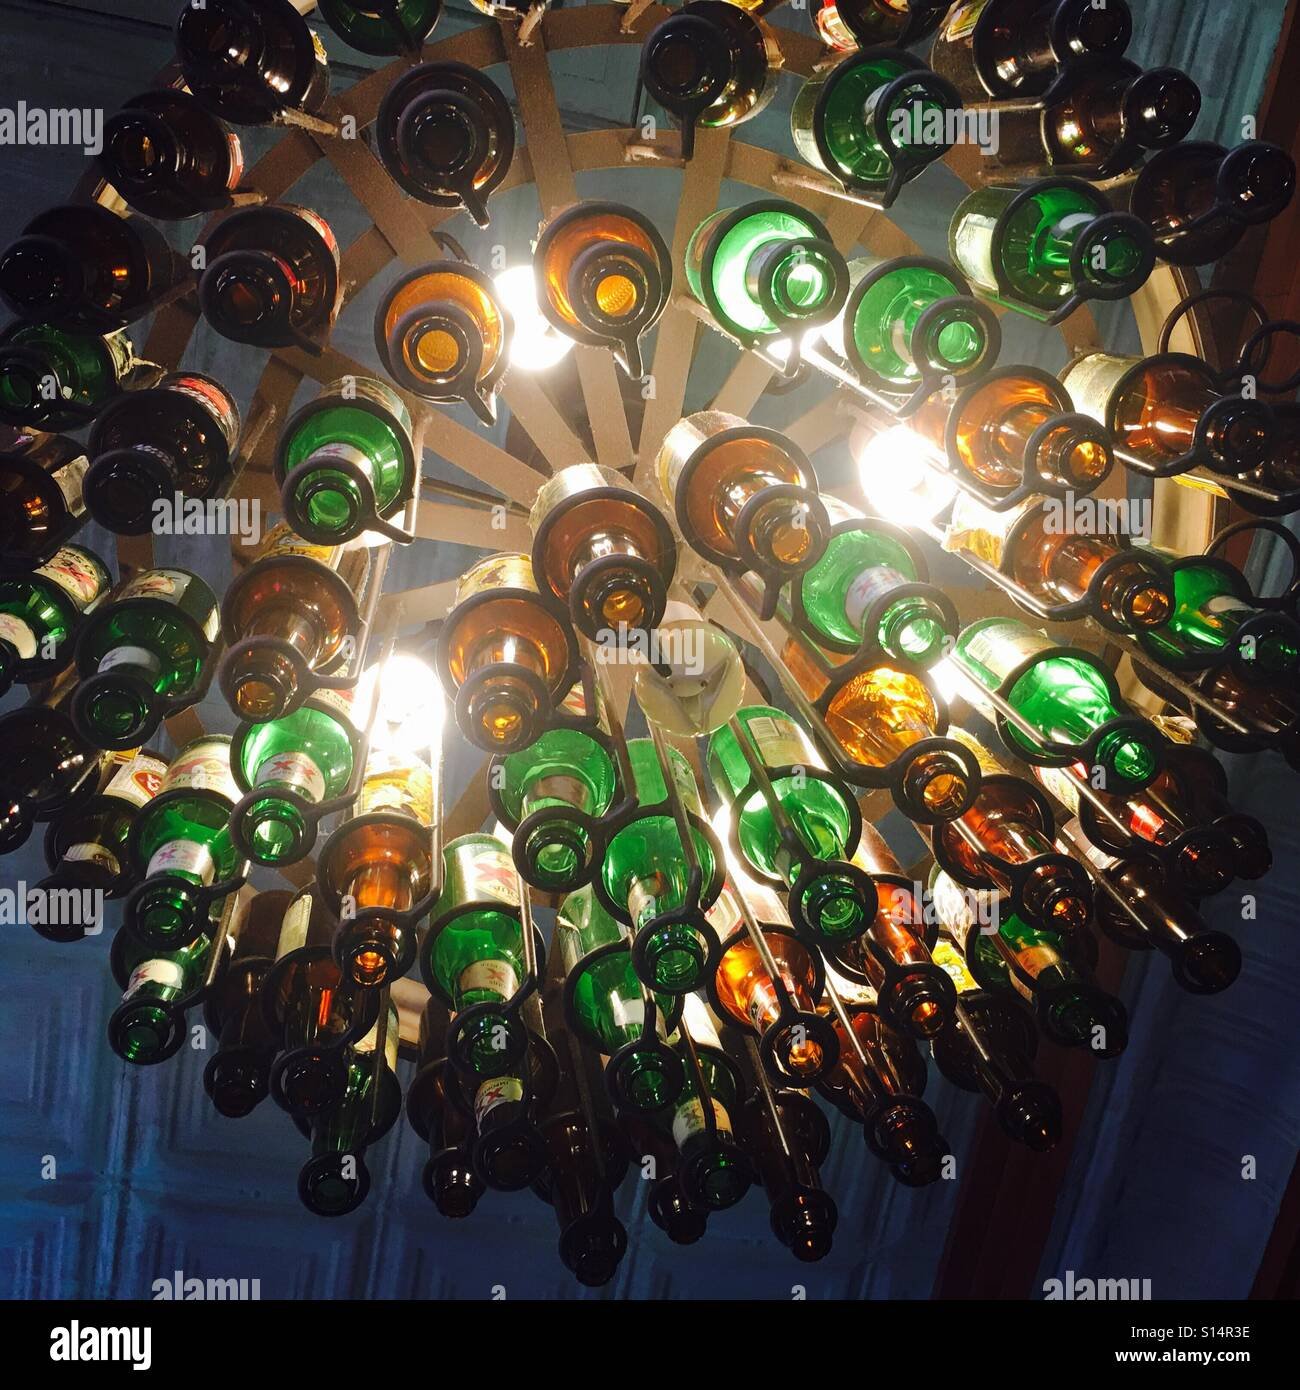 Chandelier Beer bottle